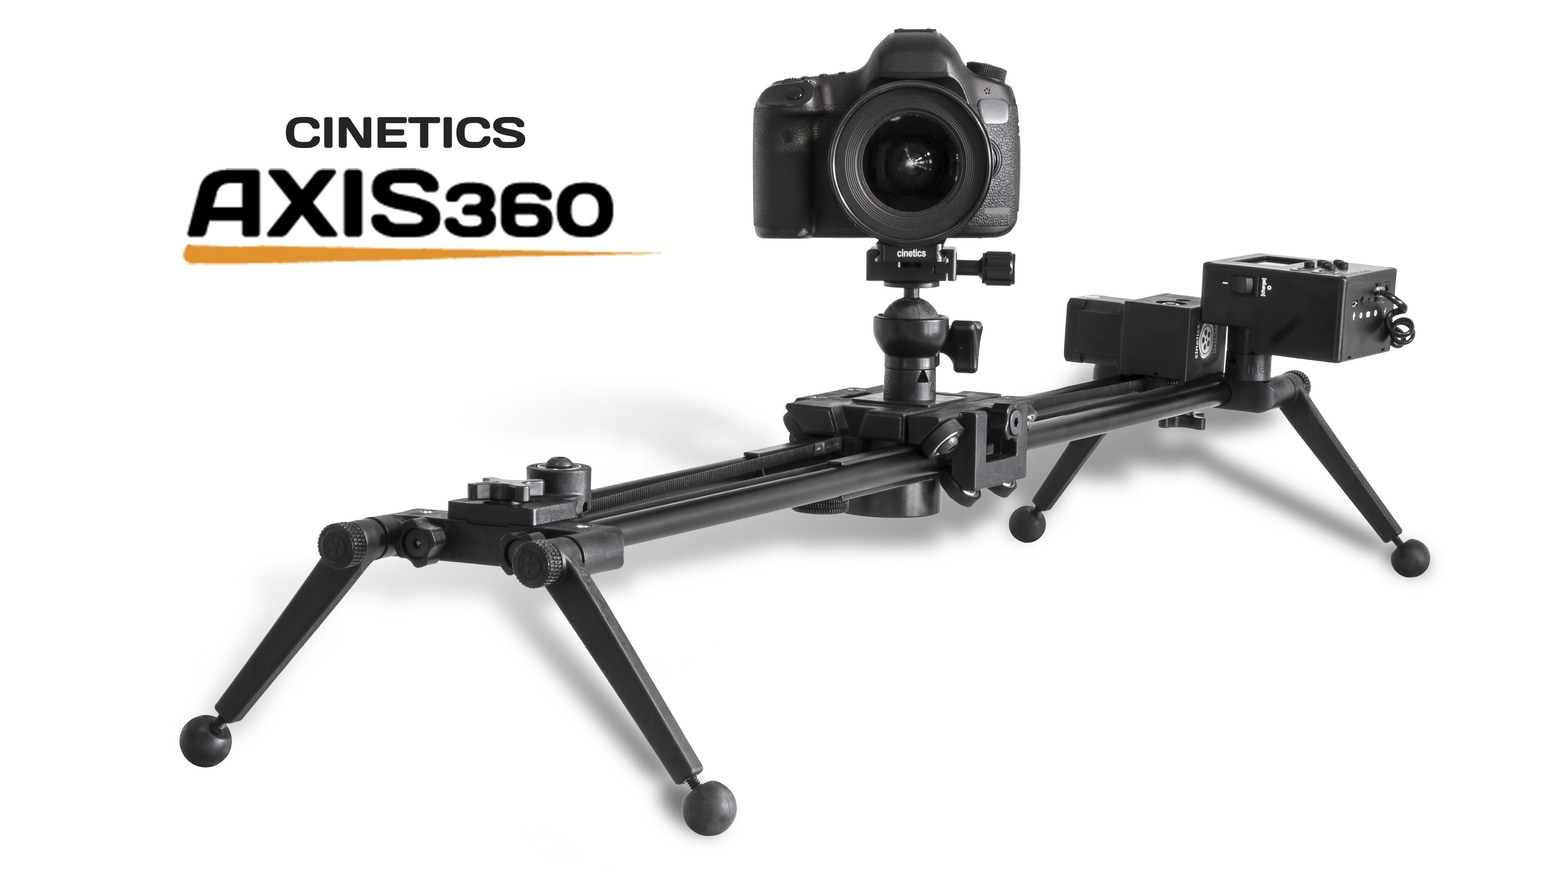 A compact, motorized tripod head and slider for dynamic video and timelapse photography.